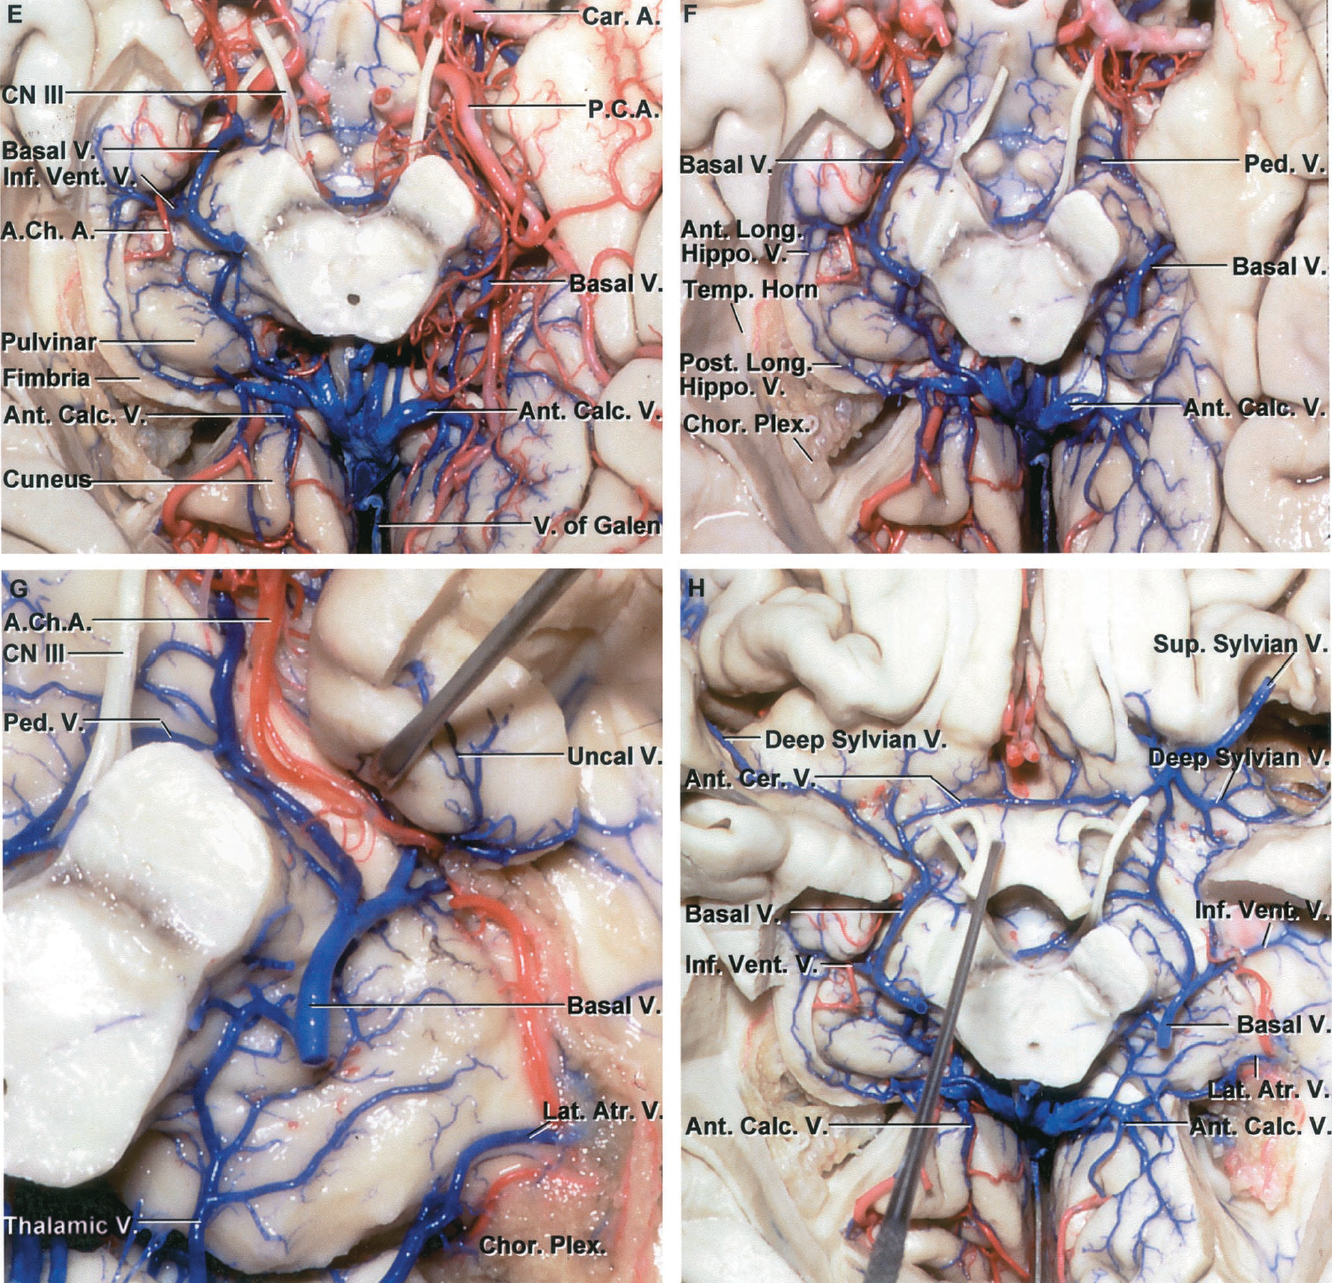 FIGURE 4.21. E-H. E, inferior view of the basal cisterns in the same cerebrum. The medial part of the right parahippocampal gyrus has been removed to expose the temporal horn while preserving the uncus and the fimbria of the fornix. The left posterior cerebral artery and the medial temporal structures have been preserved. The lower lip of the right calcarine sulcus has been removed to expose the cuneus and anterior calcarine veins. The basal vein courses posteriorly around the cerebral peduncle and below the thalamus. The right anterior choroidal artery passes between the lateral geniculate body and the fimbria to reach the choroid plexus in the temporal horn. The left basal vein courses above the posterior cerebral artery. F, the left posterior cerebral artery has been removed to expose the basal vein. The anterior part of the left basal vein is hidden deep to the uncus. The right anterior and posterior longitudinal hippocampal veins course along the fimbria. G, the lower part of the posterior segment of the left uncus plus the parahippocampal gyrus and fimbria have been removed to expose the roof of the left temporal horn. The posterior segment of the left basal vein is missing, because the anterior part drained into a sinus in the tentorial that has been removed instead of draining into the vein of Galen. Uncal veins converge on the basal vein, as does the peduncular vein. The lateral atrial and thalamic veins converge on the calcarine vein. H, overview. The sylvian veins join the anterior cerebral veins to form the anterior end of the basal vein. The anterior cerebral veins are connected above the optic chiasm by the anterior communicating veins. The anterior segment of the right basal vein is larger than the left. The left atrial veins join the anterior calcarine vein before emptying into the vein of Galen. A., artery; A.C.A., anterior cerebral artery; A.Ch.A., anterior choroidal artery; Ant., anterior; Atr., atrial; Calc., calcarine; Car., carotid; Cer., cerebral; Chor., choroid; CN, cranial nerve; Comm., communicating; Hippo., hippocampal; Inf., inferior; Lat., lateral; Long., longus; Olf., olfactory; Paraterm., paraterminal; P.C.A., posterior cerebral artery; Ped., peduncle; Perf., perforated; Plex., plexus; Post., posterior; Subst., substance; Sup., superior; Temp., temporal; Tr., tract; V., vein; Vent., ventricular.